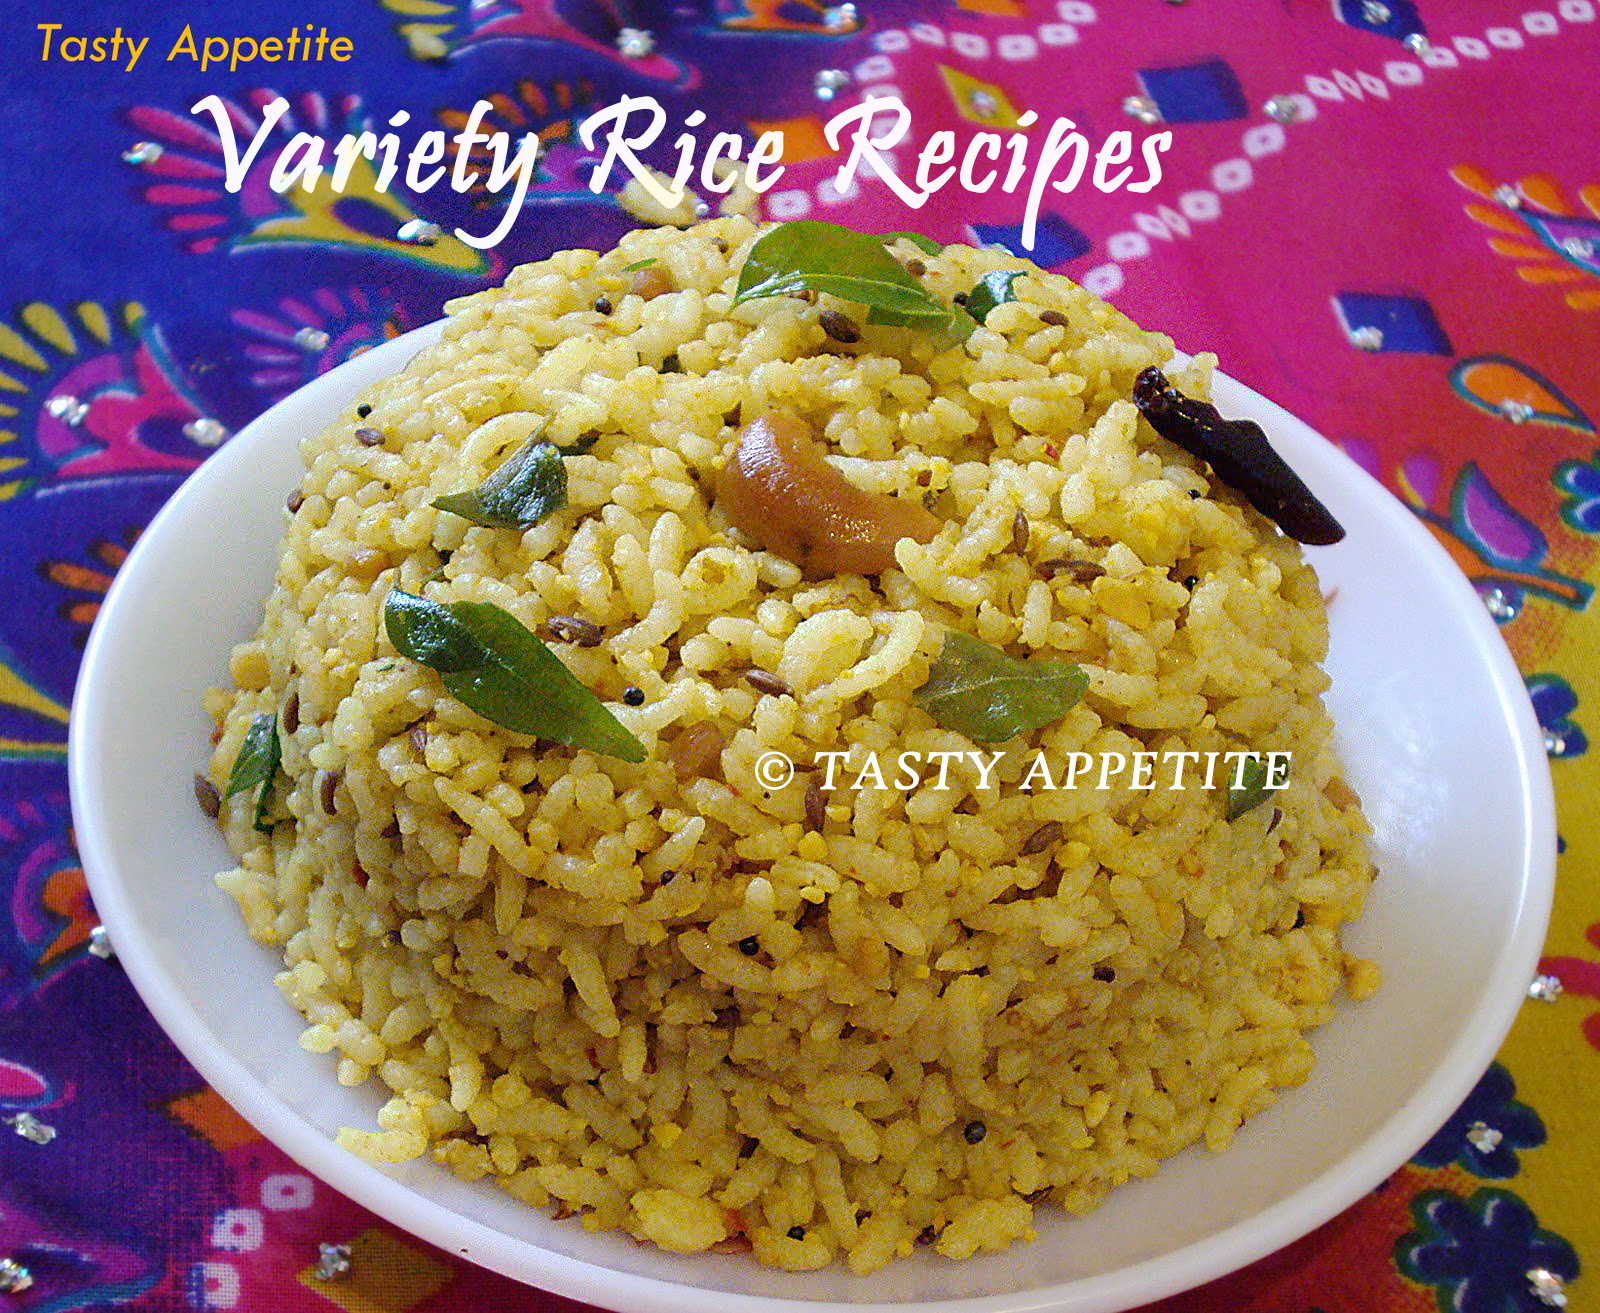 South indian variety rice recipes healthy lunch box recipes kids variety rice recipes like us on youtube for more video recipes forumfinder Images